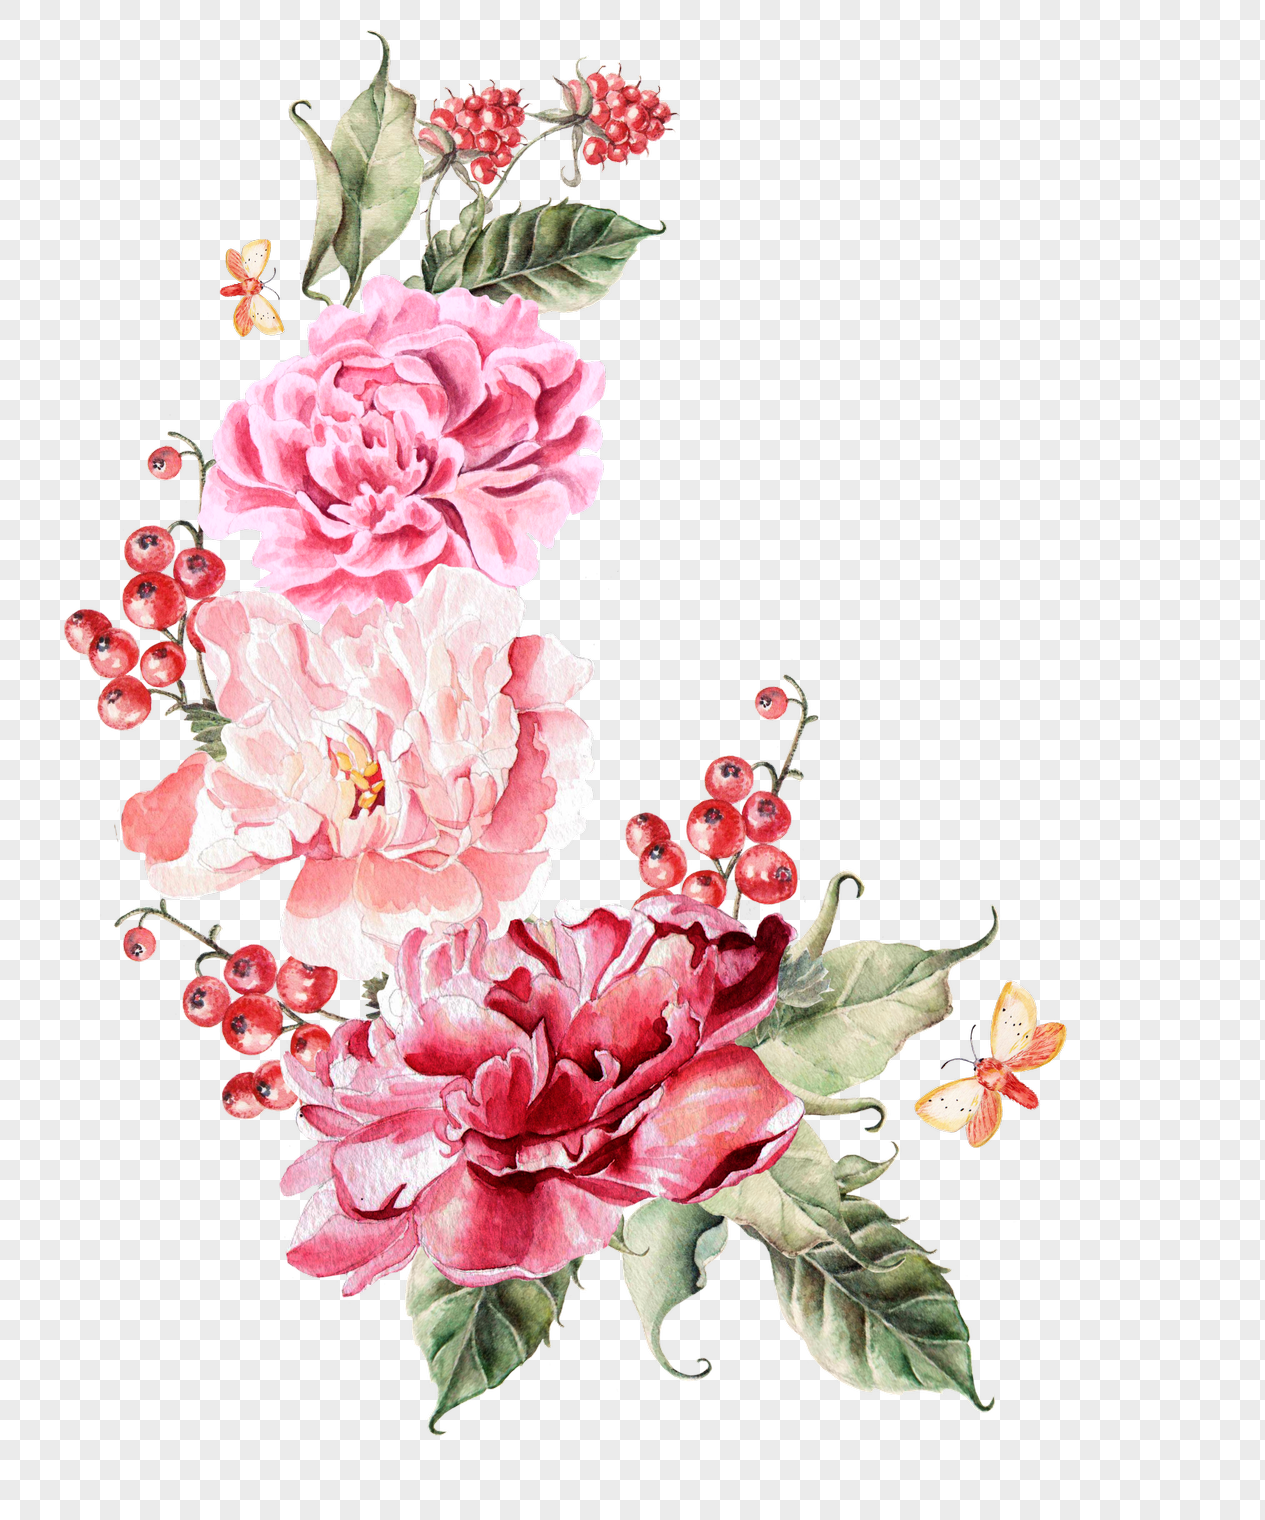 1265x1520 Colorful Watercolor Wedding Flowers Vector Material Png